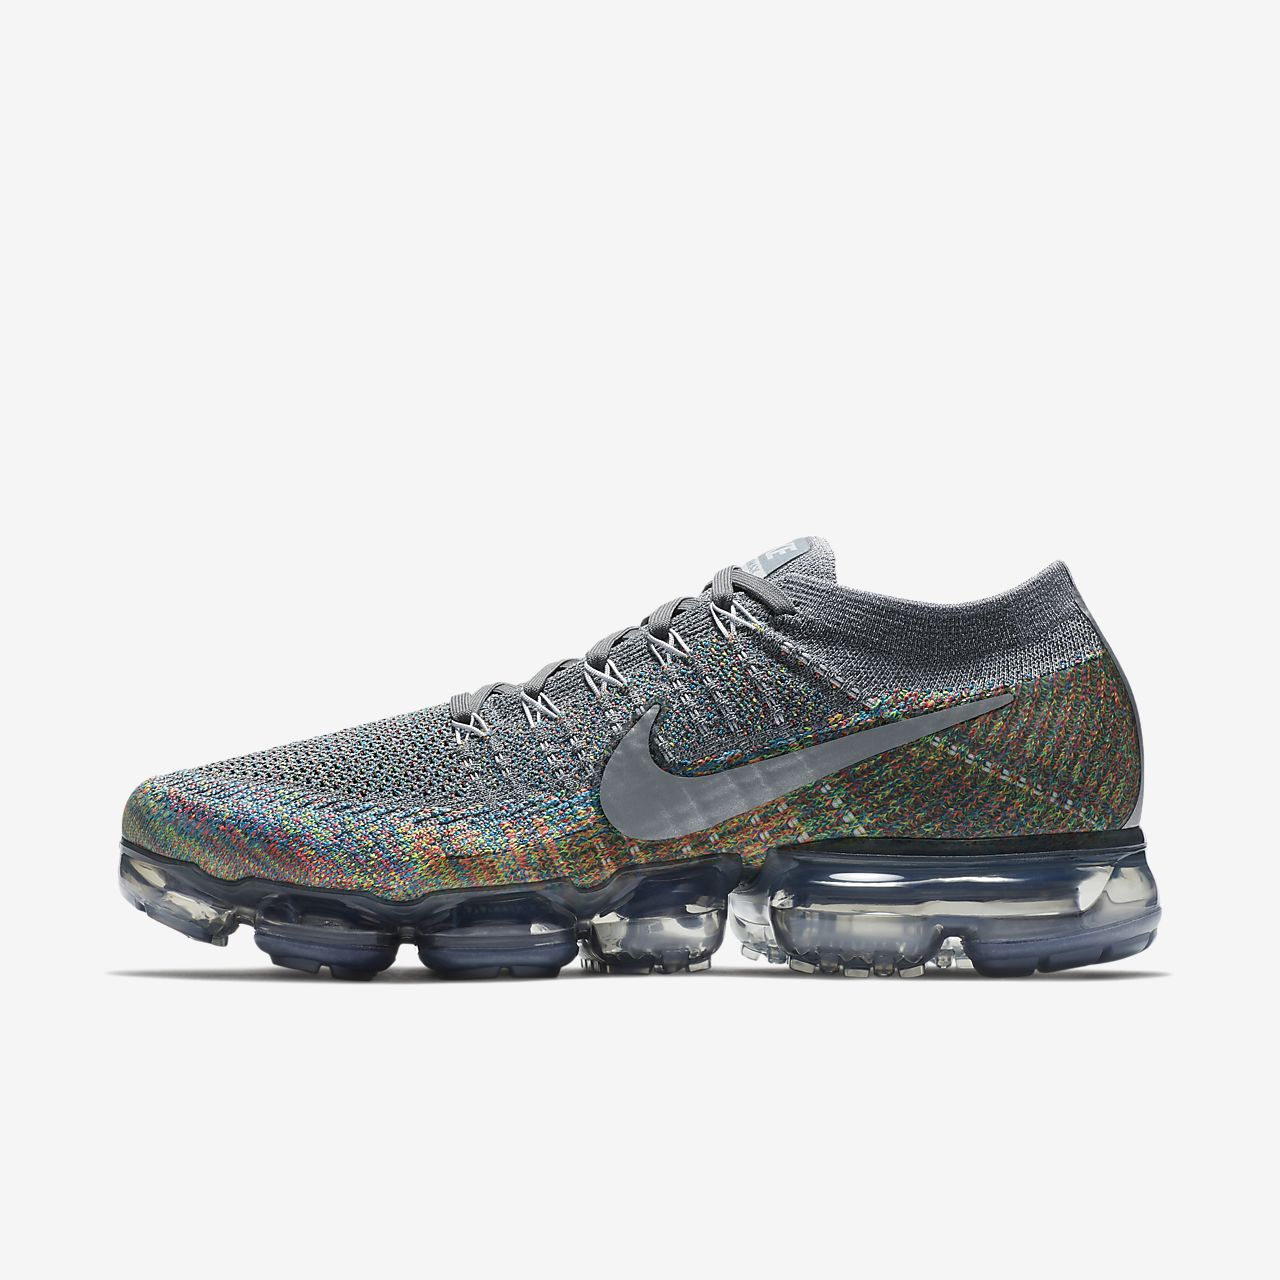 wiki for sale Nike Vapormax Flyknit sneakers free shipping factory outlet free shipping 2014 new outlet footlocker finishline clearance sale zbwcs